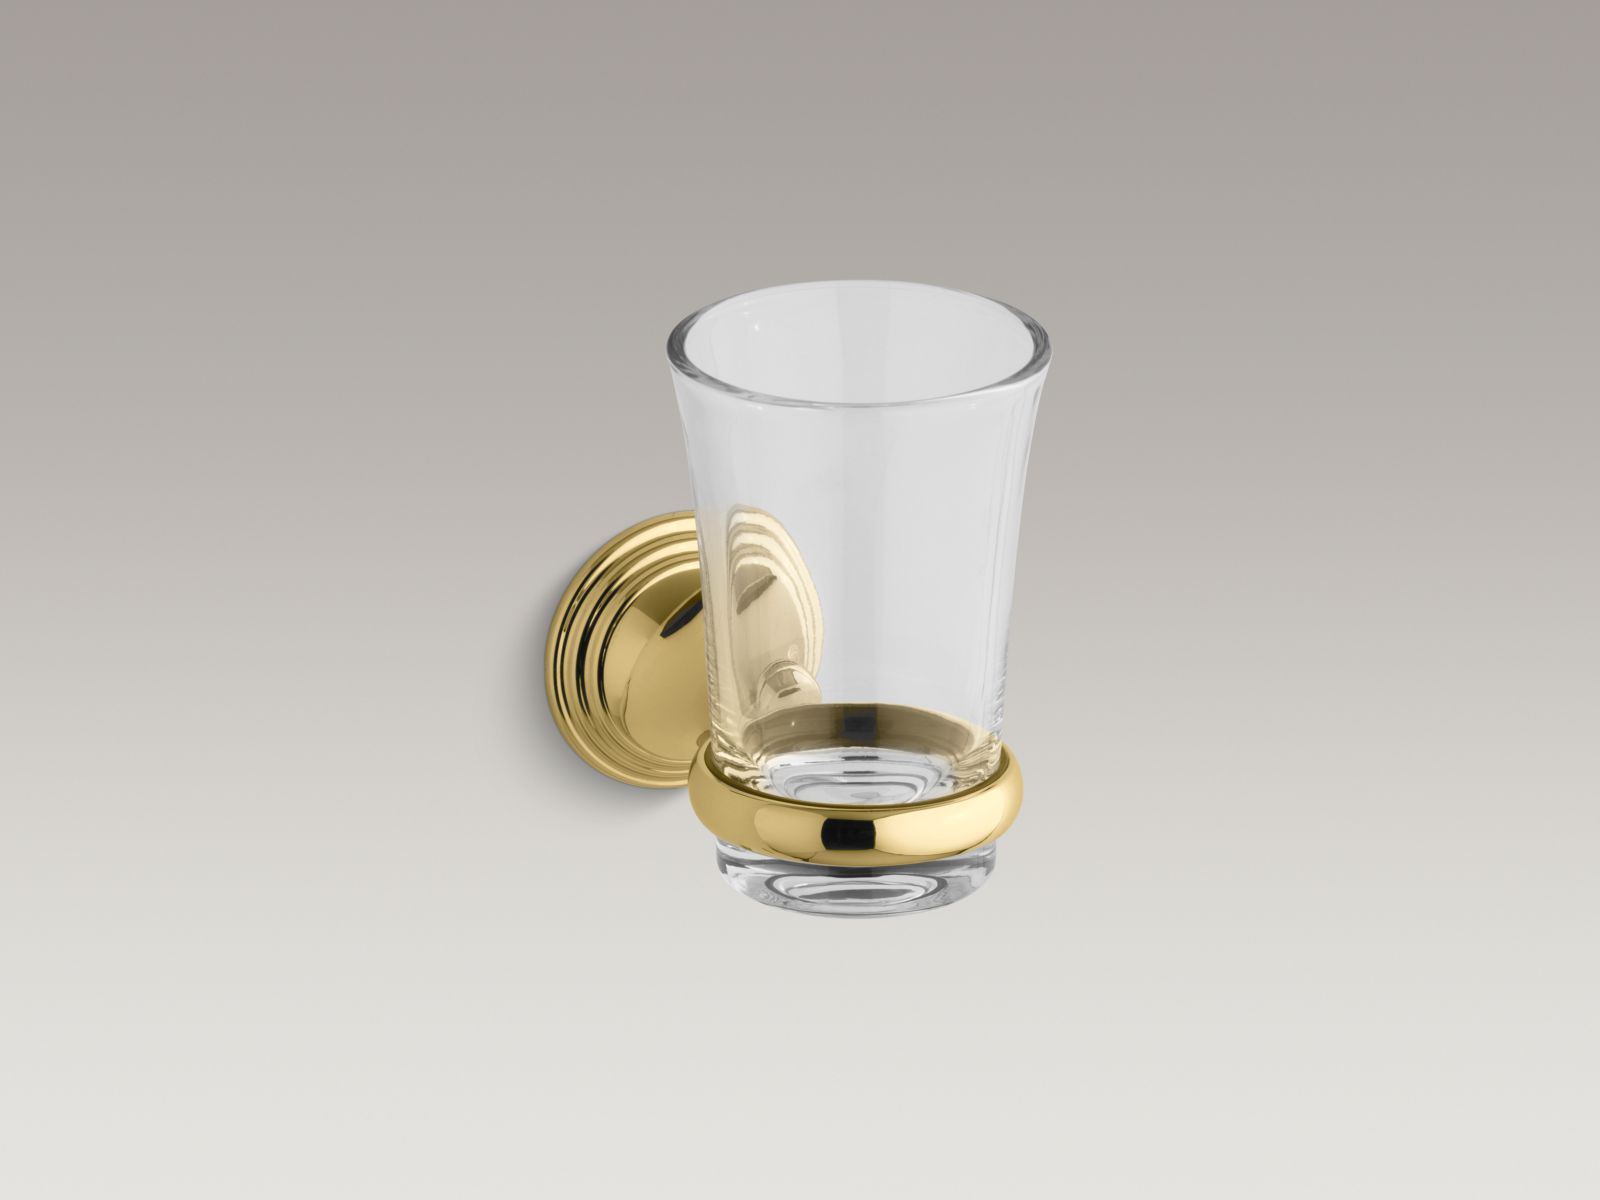 Kohler K-10561-PB Devonshire Tumbler and Holder Polished Brass